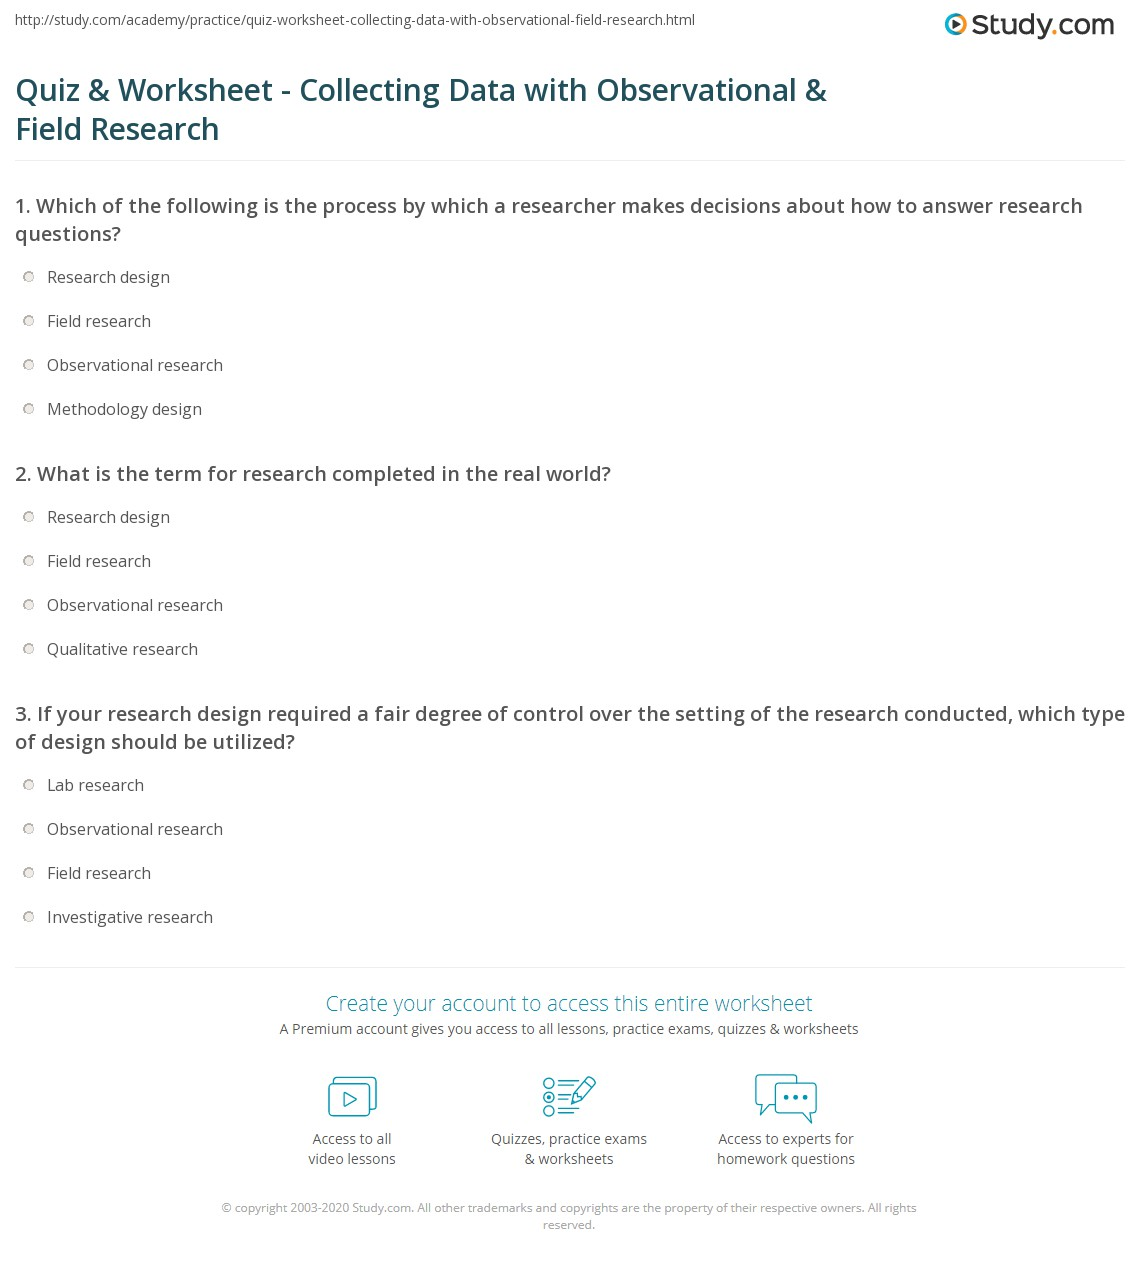 Quiz Worksheet Collecting Data With Observational Field